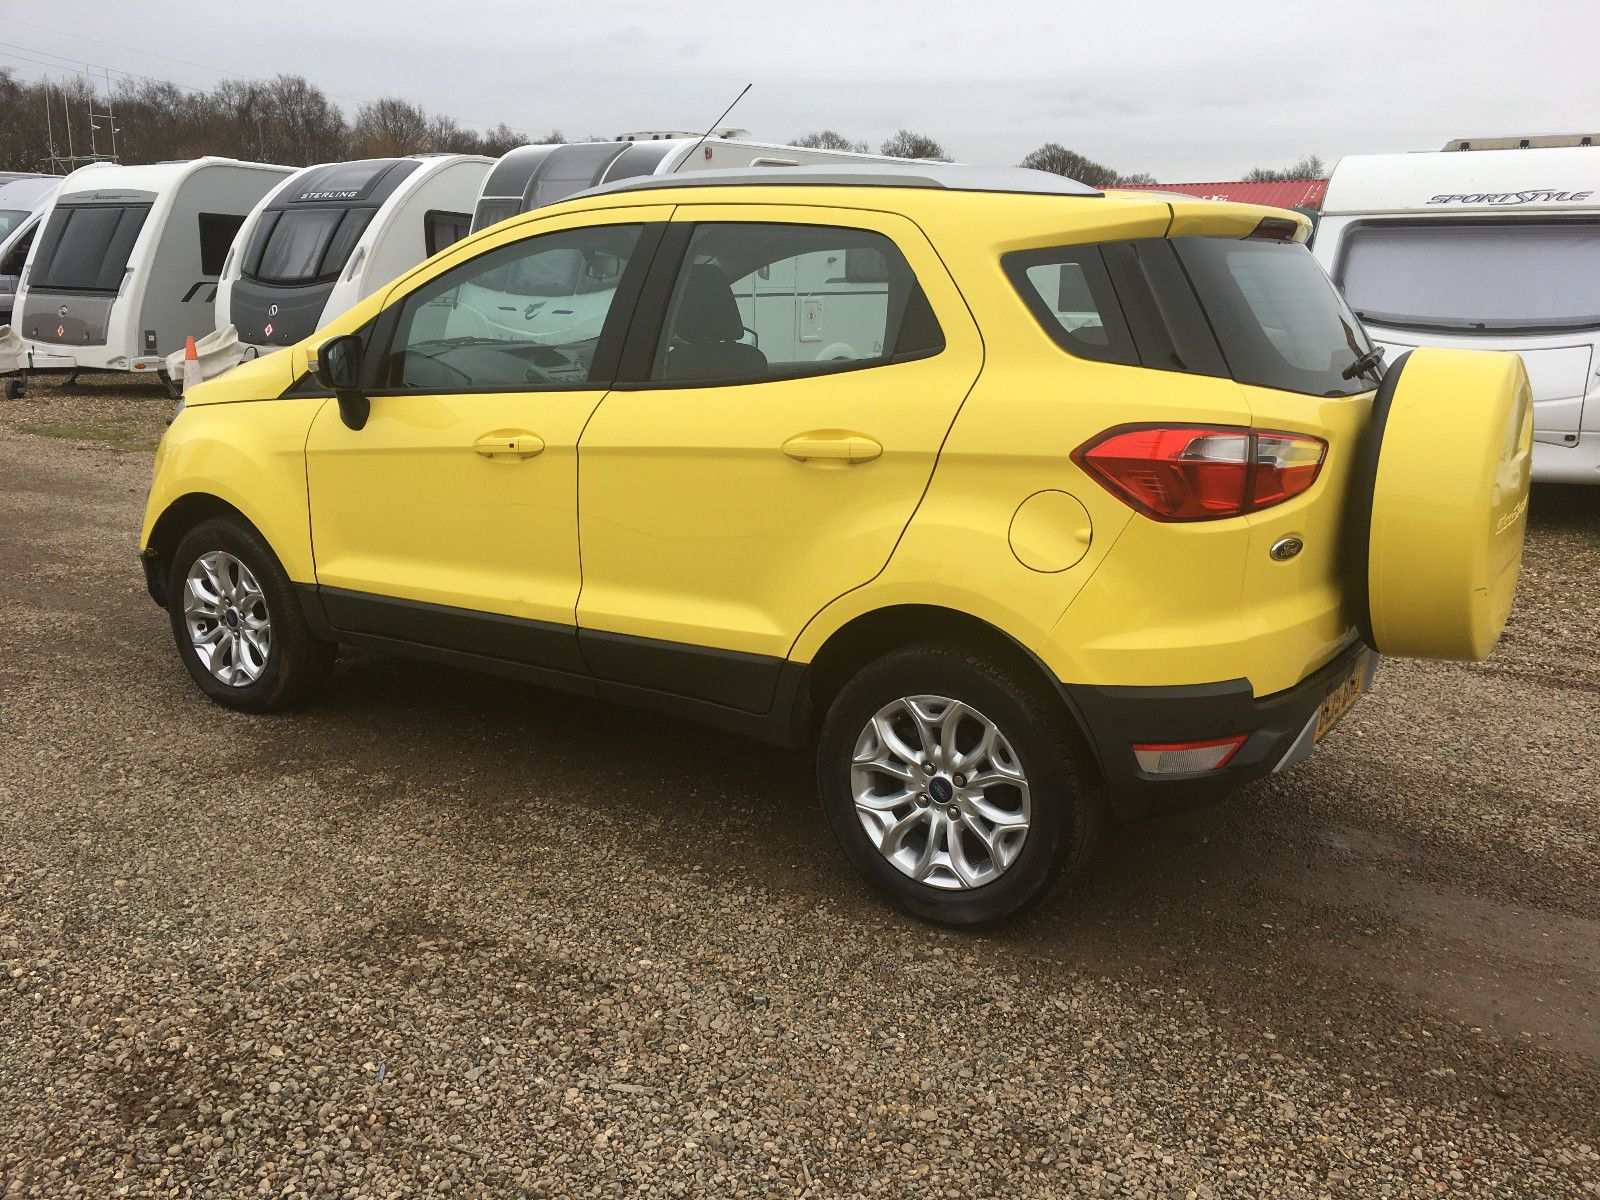 2015 Ford Ecosport Titanium Yellow Cat D Salvage Damaged Repair Logbook V5 Suv Ford Ecosport Yellow Cat Vauxhall Astra